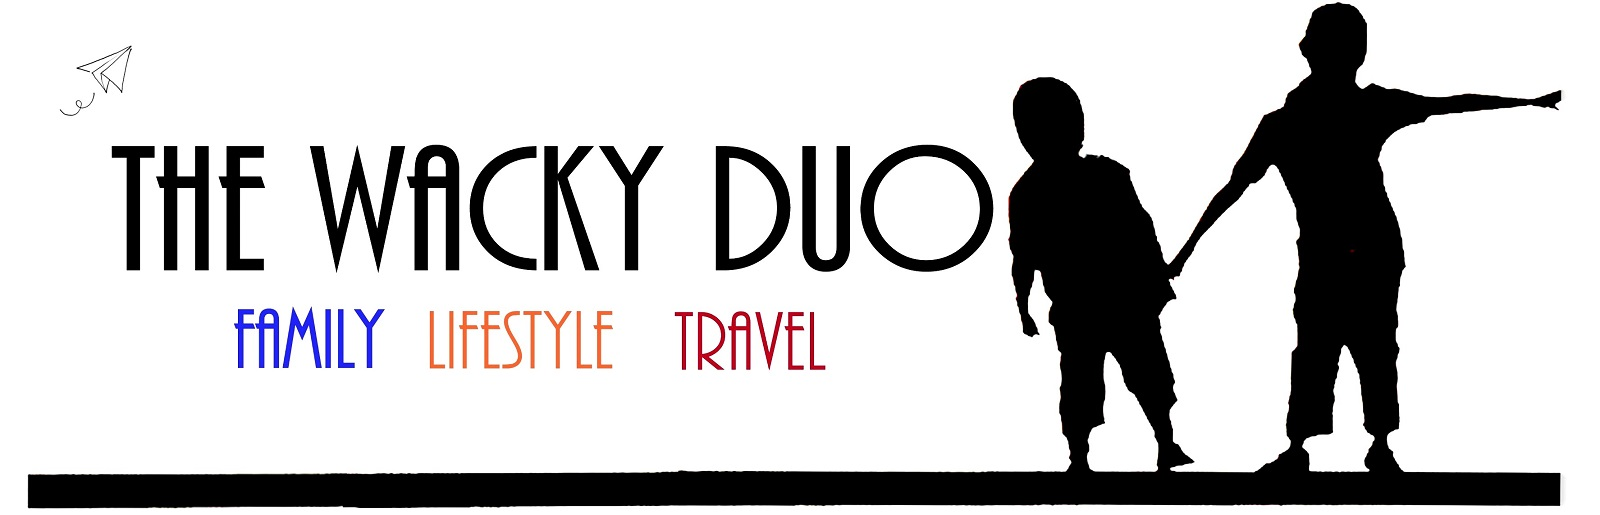 The Wacky Duo | Singapore Family Lifestyle and Travel Website